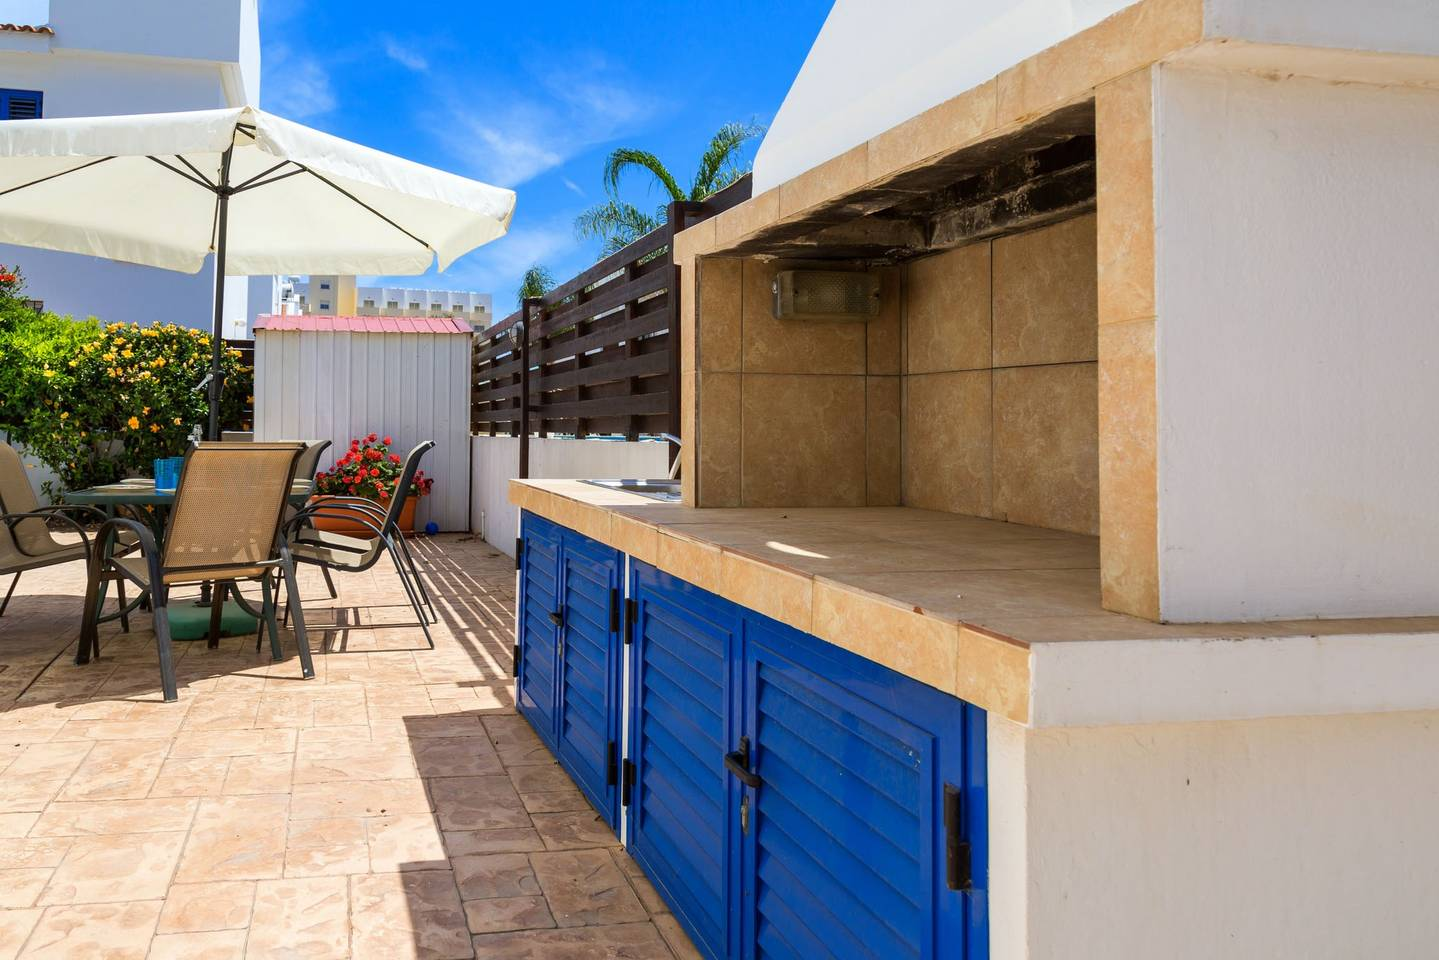 Apartment Villa Evace - 3 Bedroom Villa with Private Pool - 100m from Beach photo 18209520